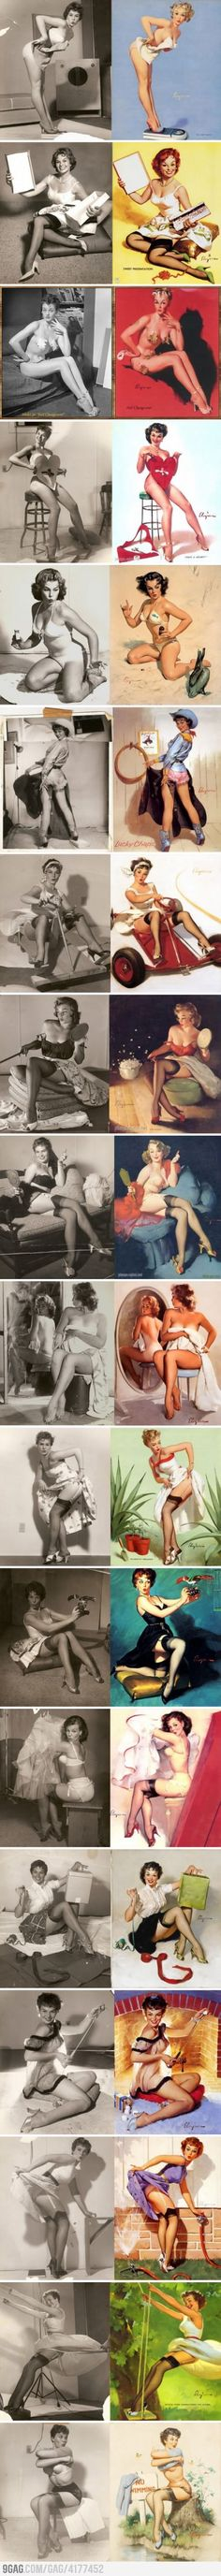 Real Pin up models of the past :)